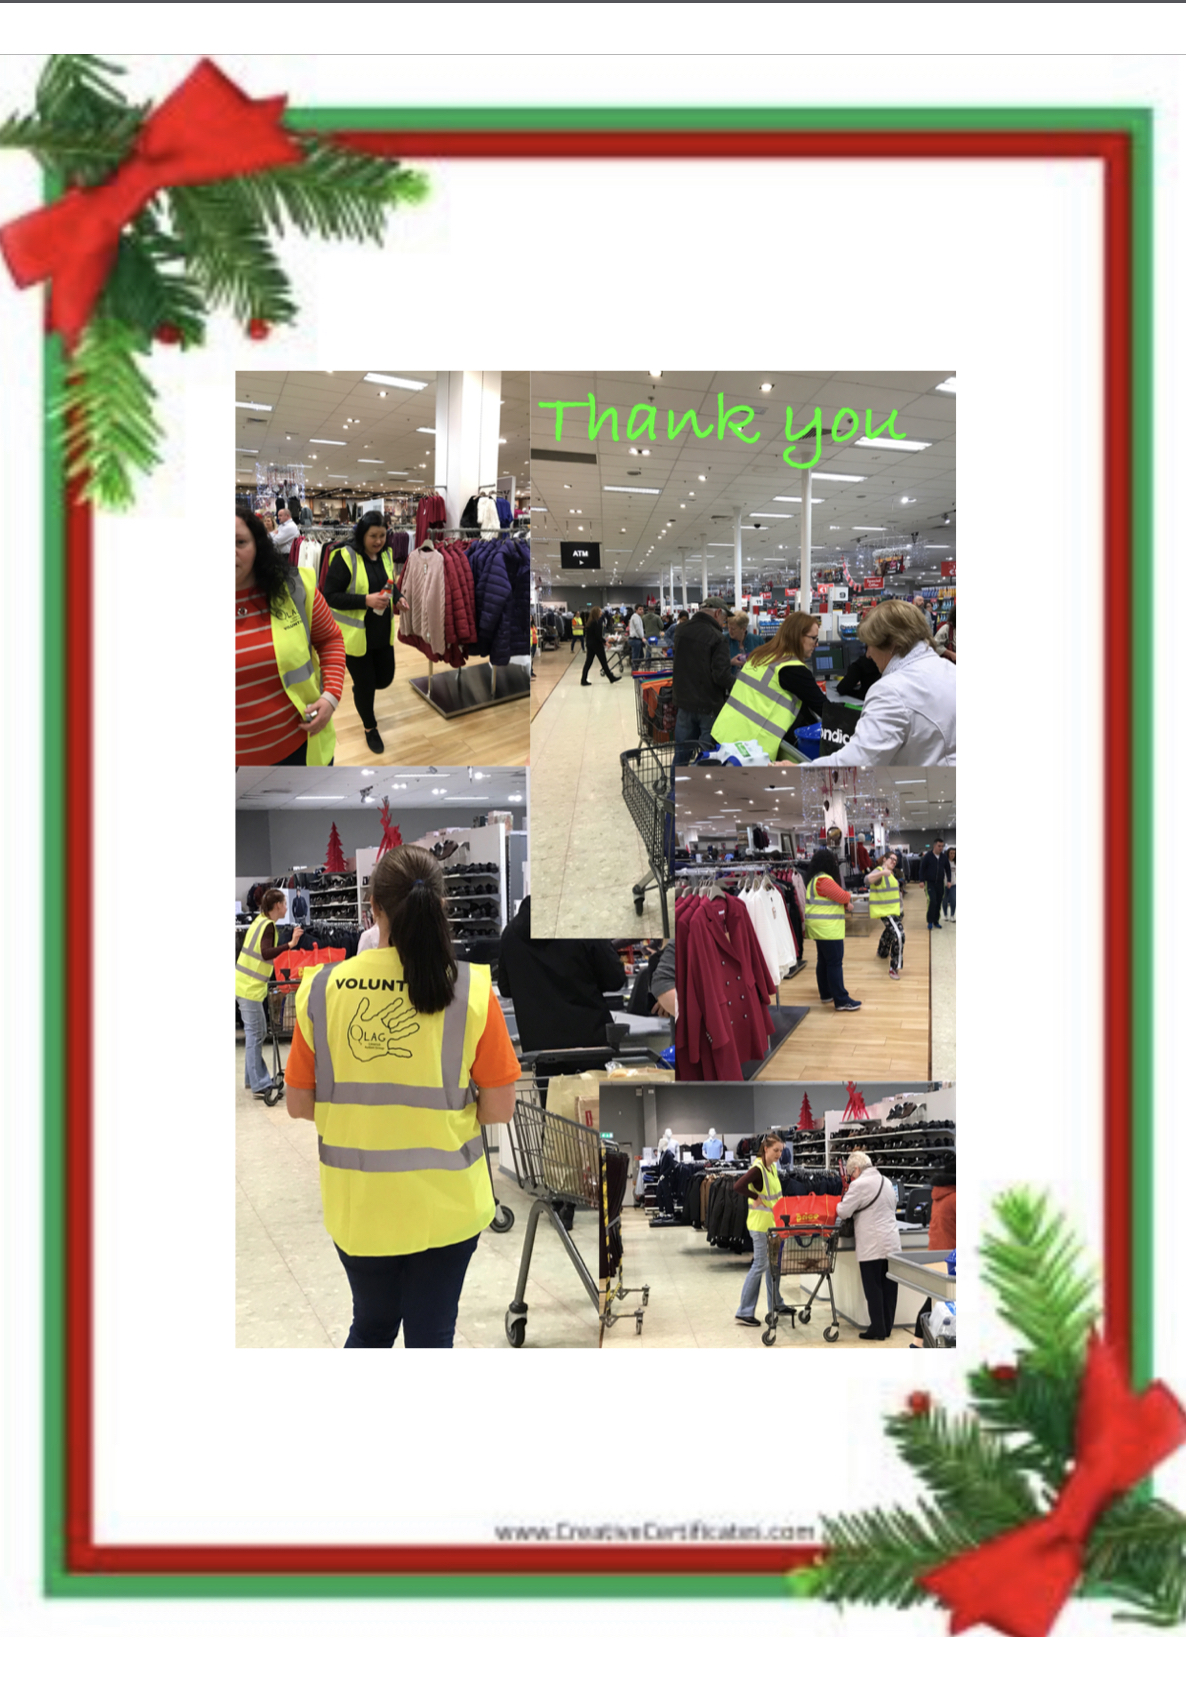 Fundraising Event- Bag packing